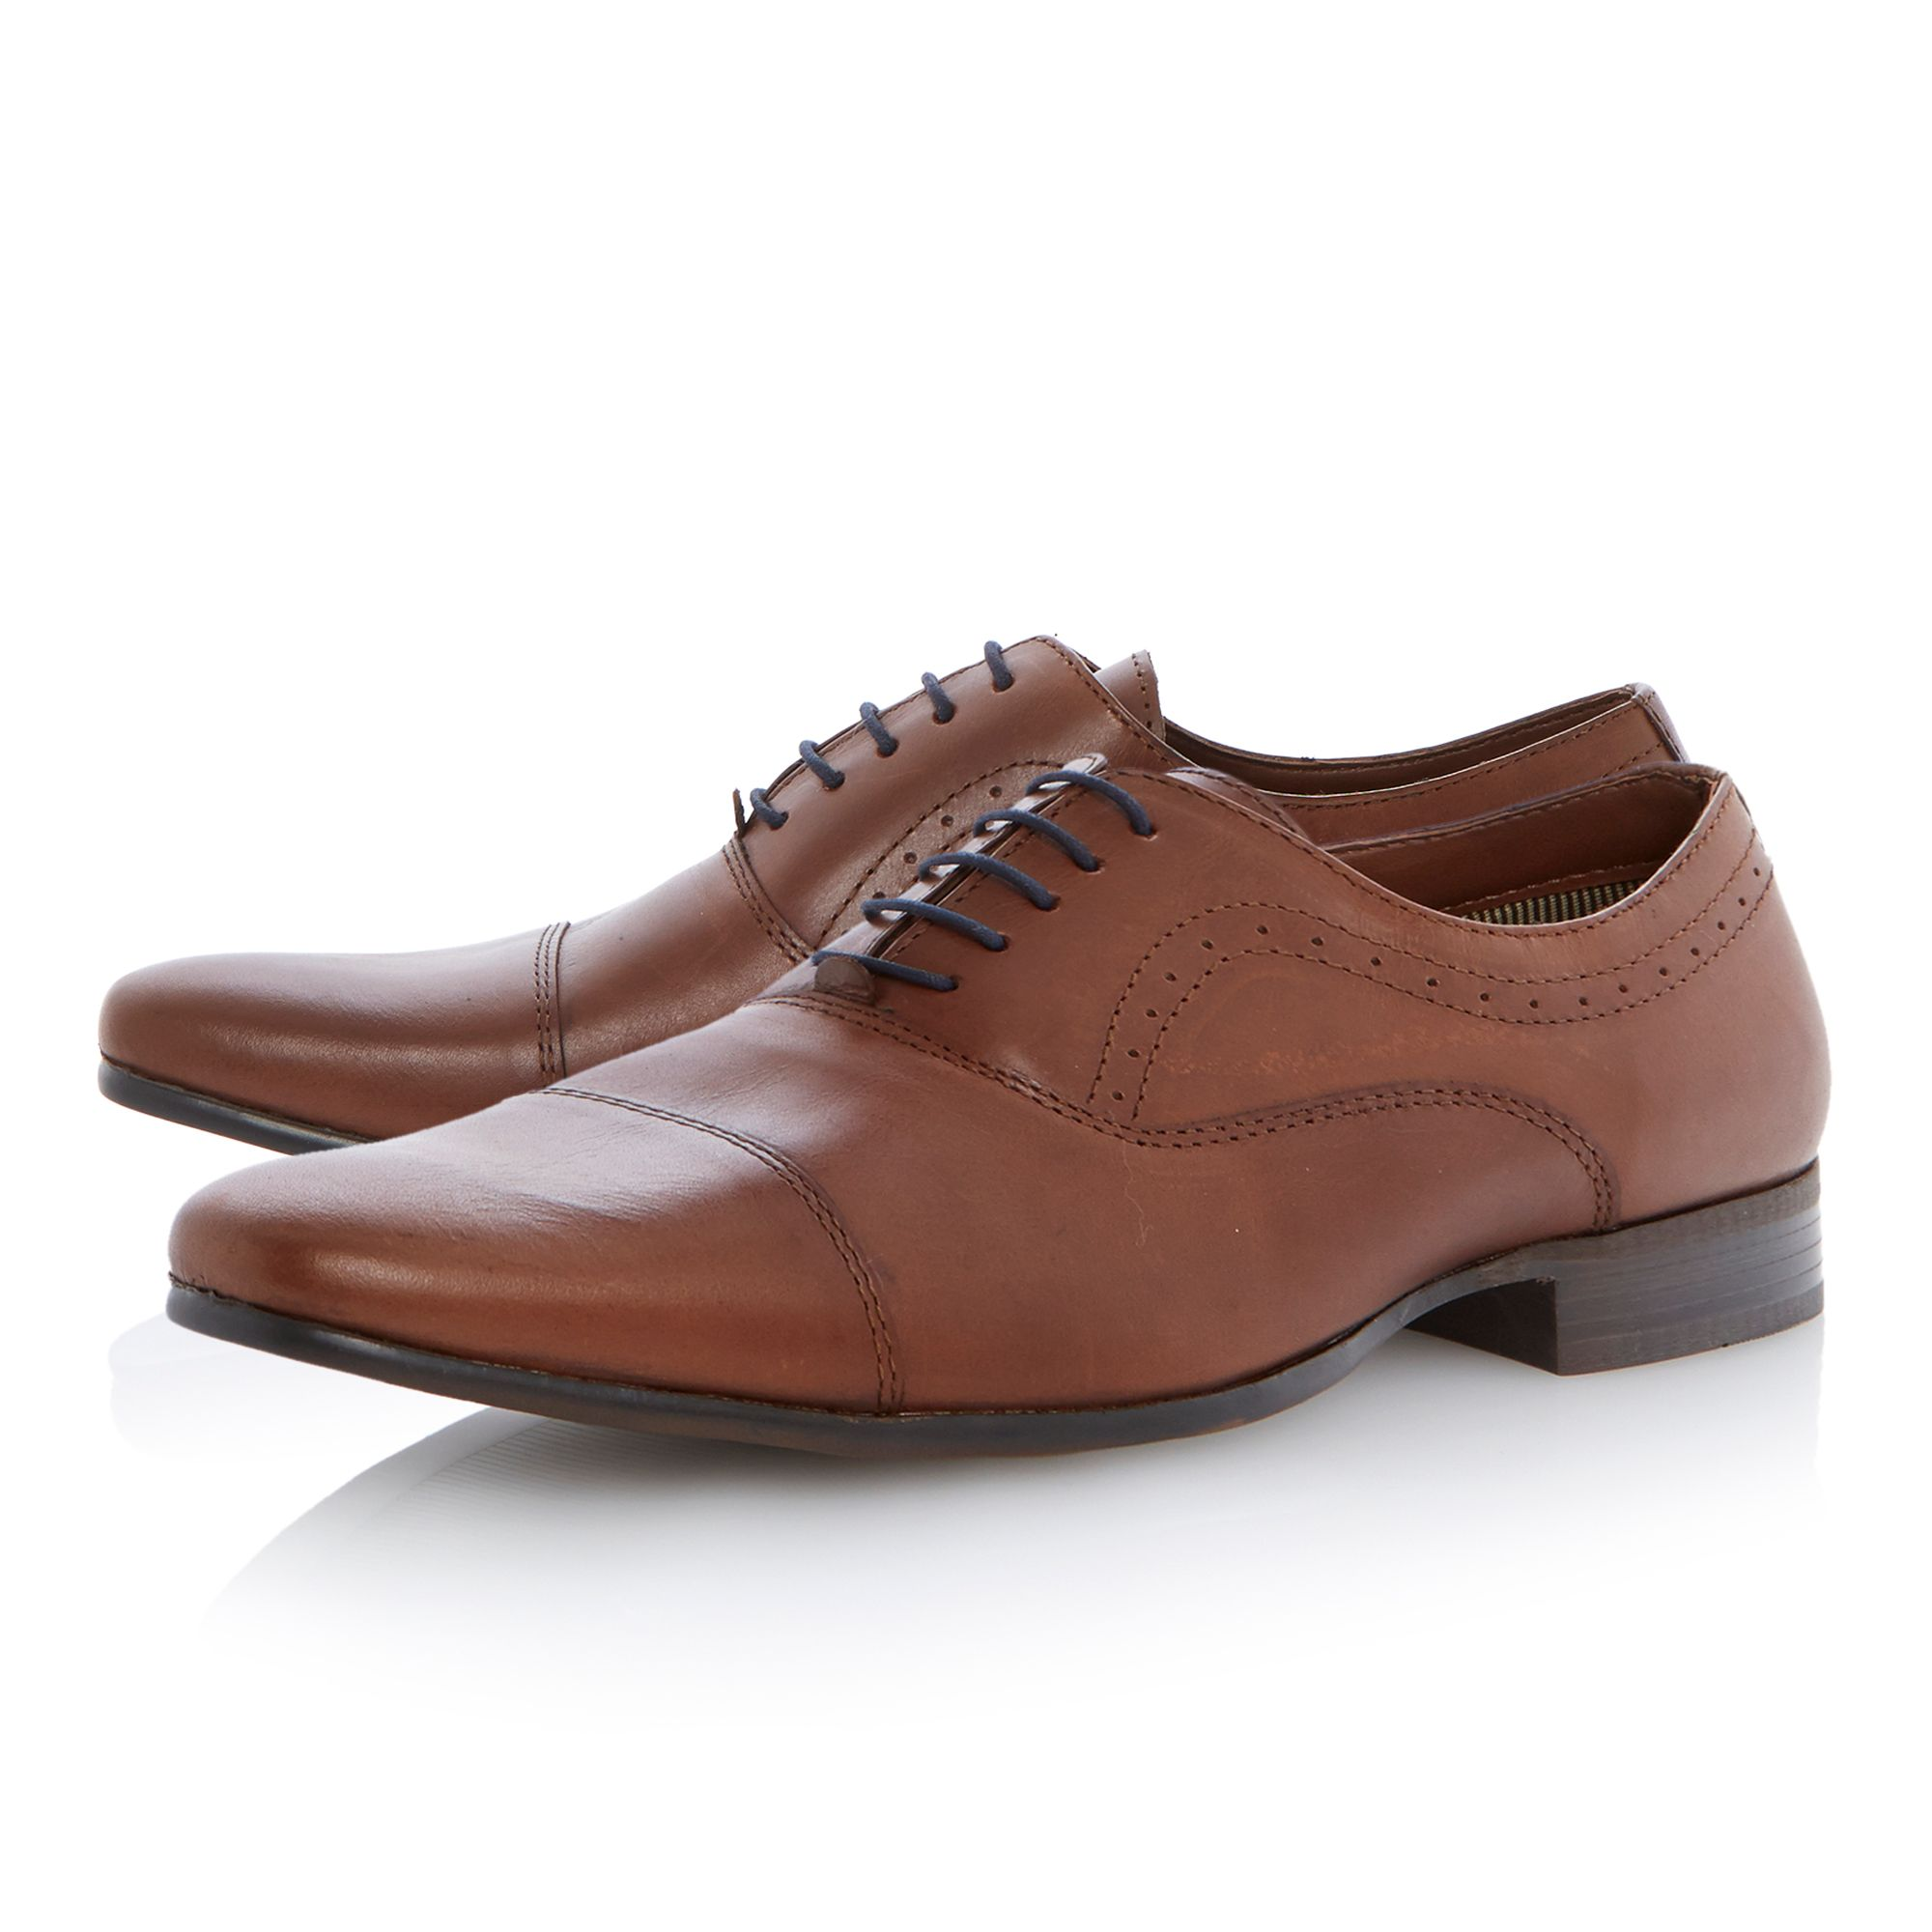 Actors lace up formal shoes